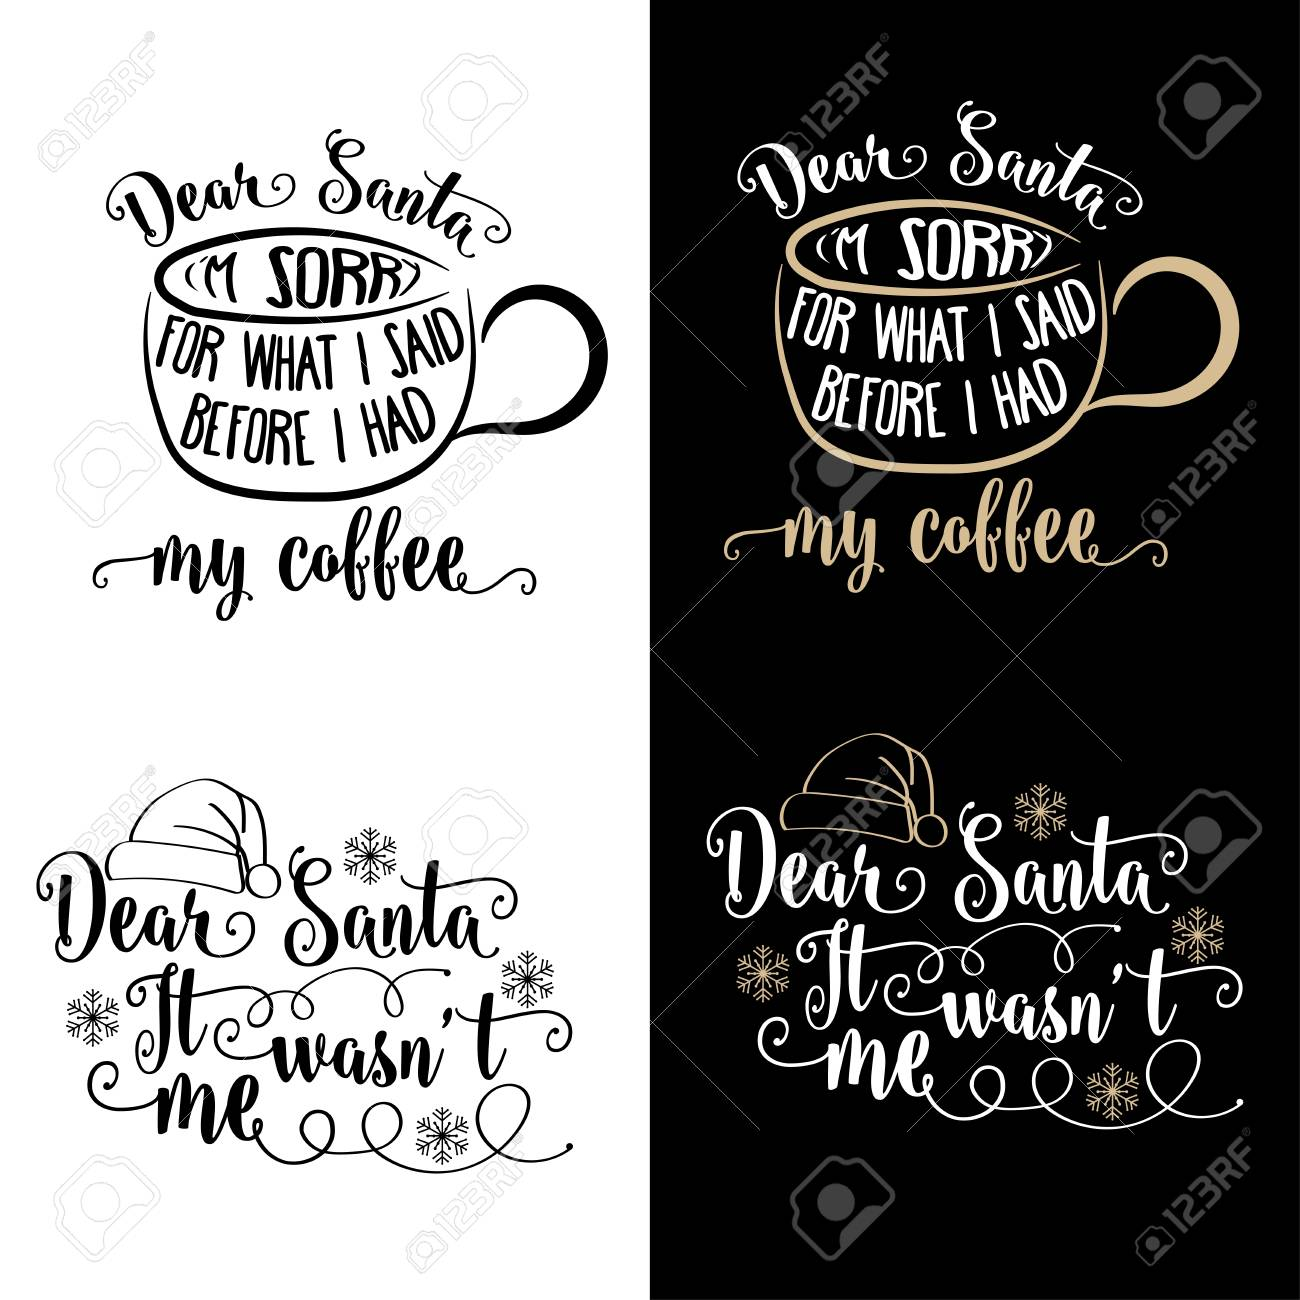 Funny Christmas Quotes Collection Christmas Poster Banner Royalty Free Cliparts Vectors And Stock Illustration Image 121667267